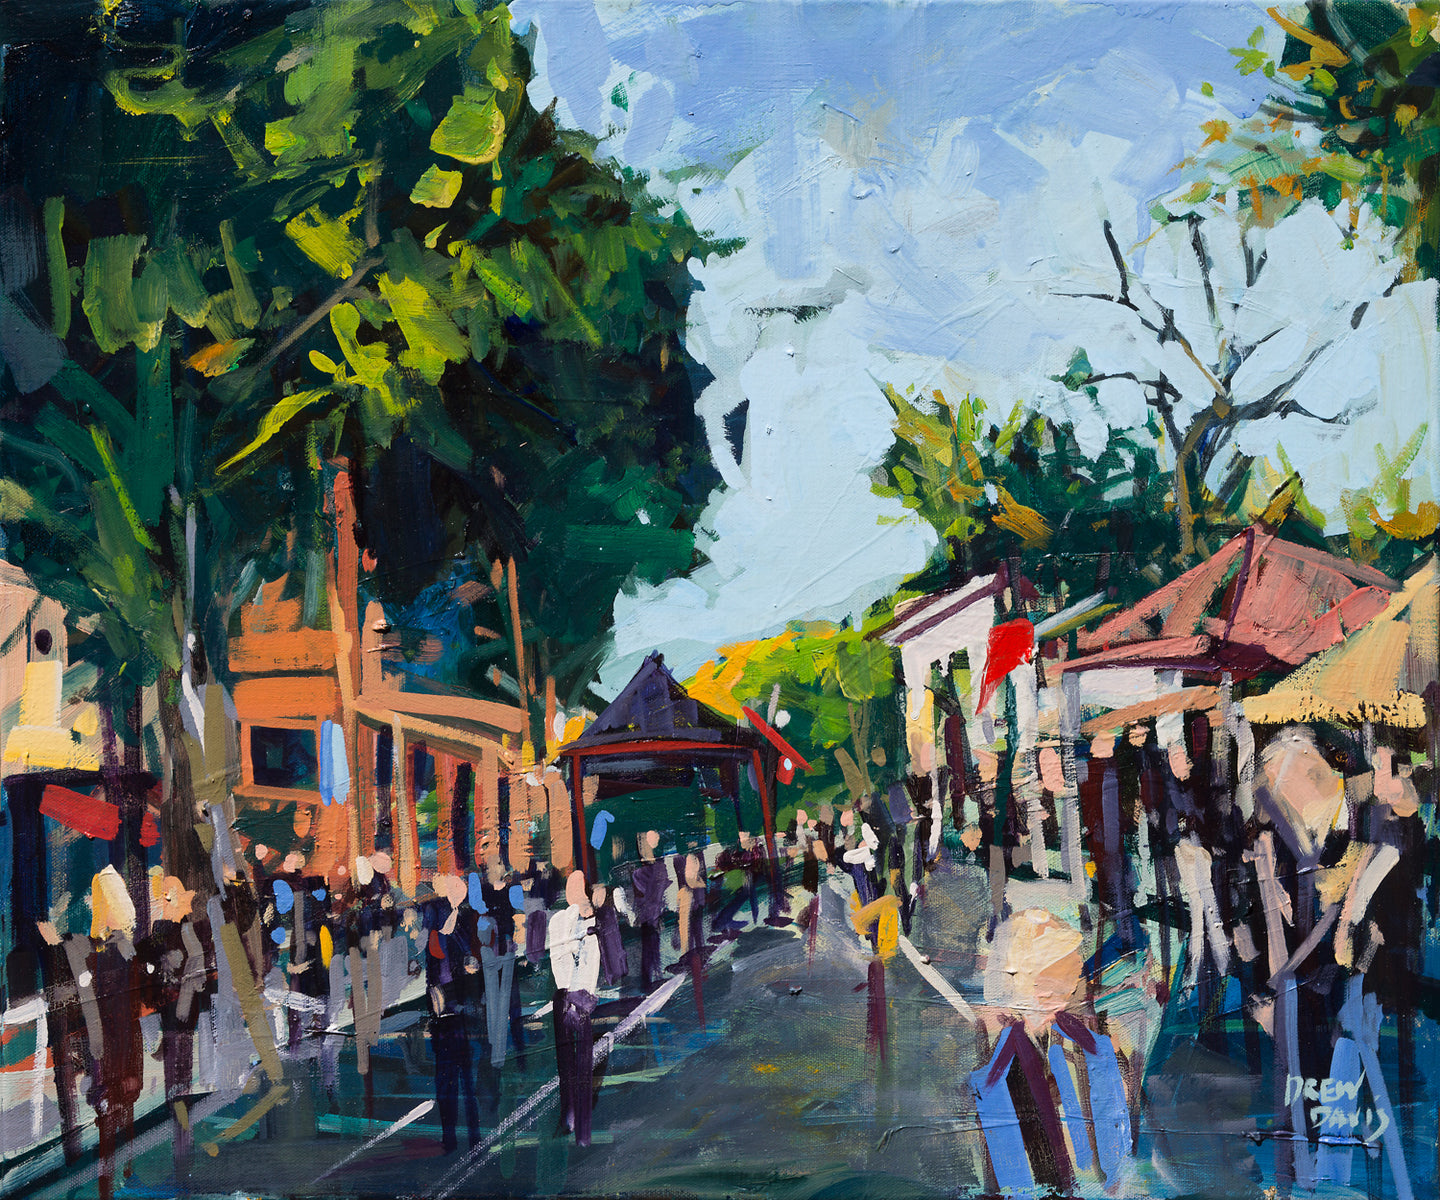 SLO Summer Farmers Market | 20x20 | SOLD - PRINTS AVAILABLE